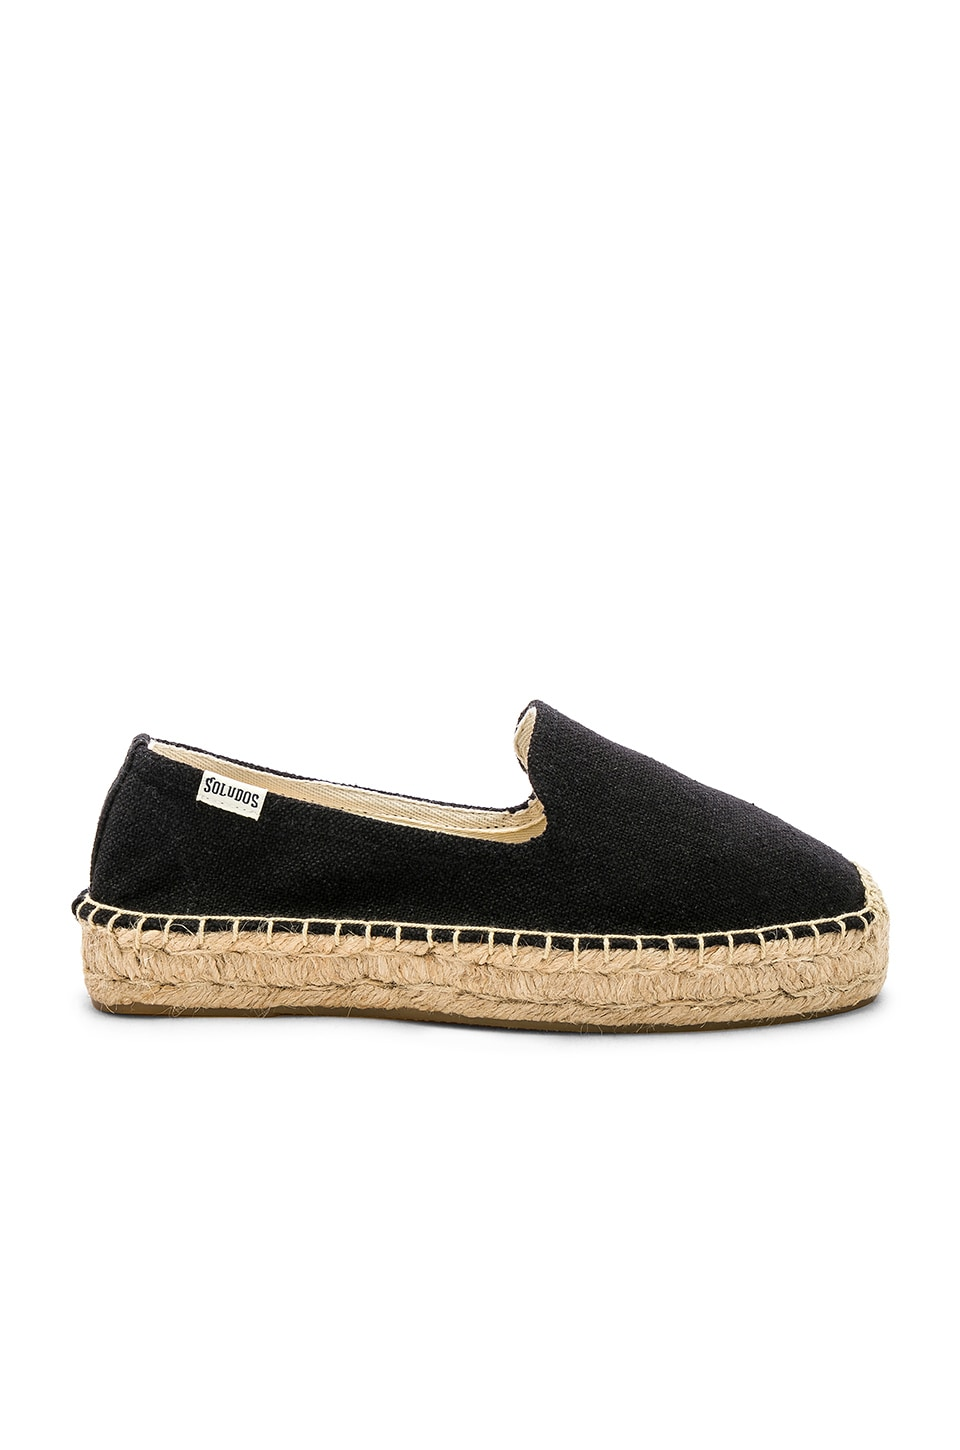 Soludos Platform Smoking Slipper in Black